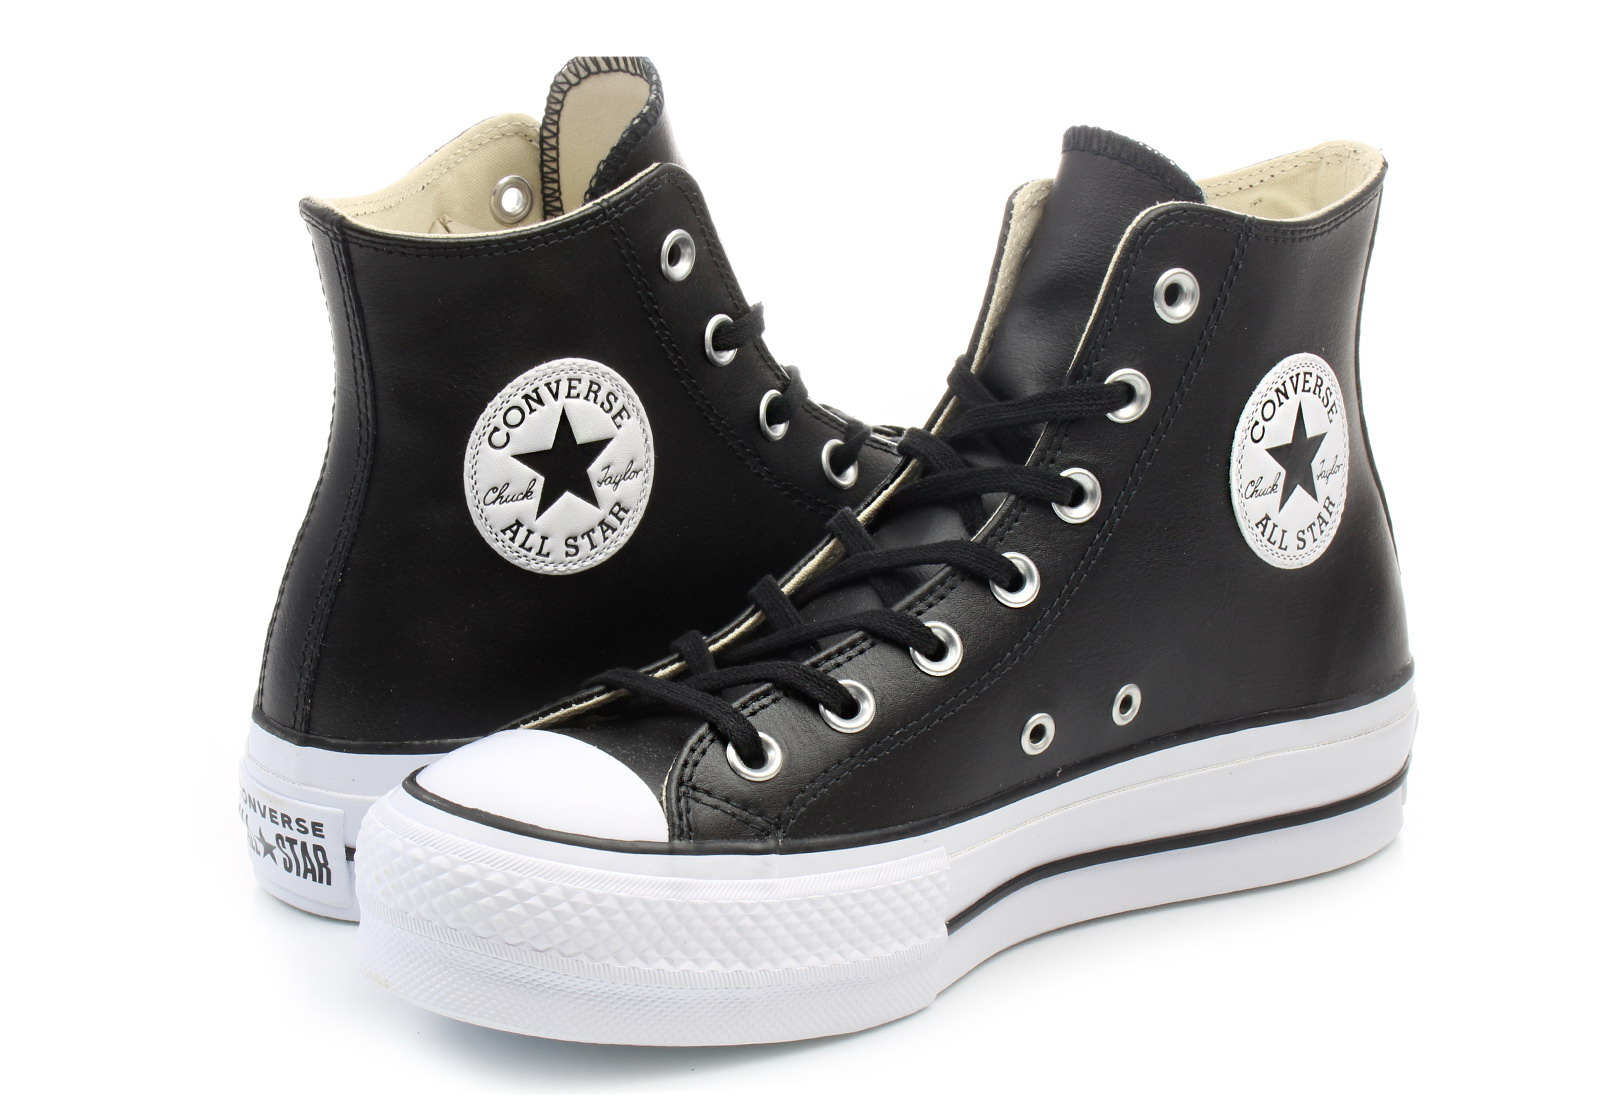 d8db953f1e71 Converse Sneakers - Chuck Taylor All Star Lift Hi - 561675C - Online ...